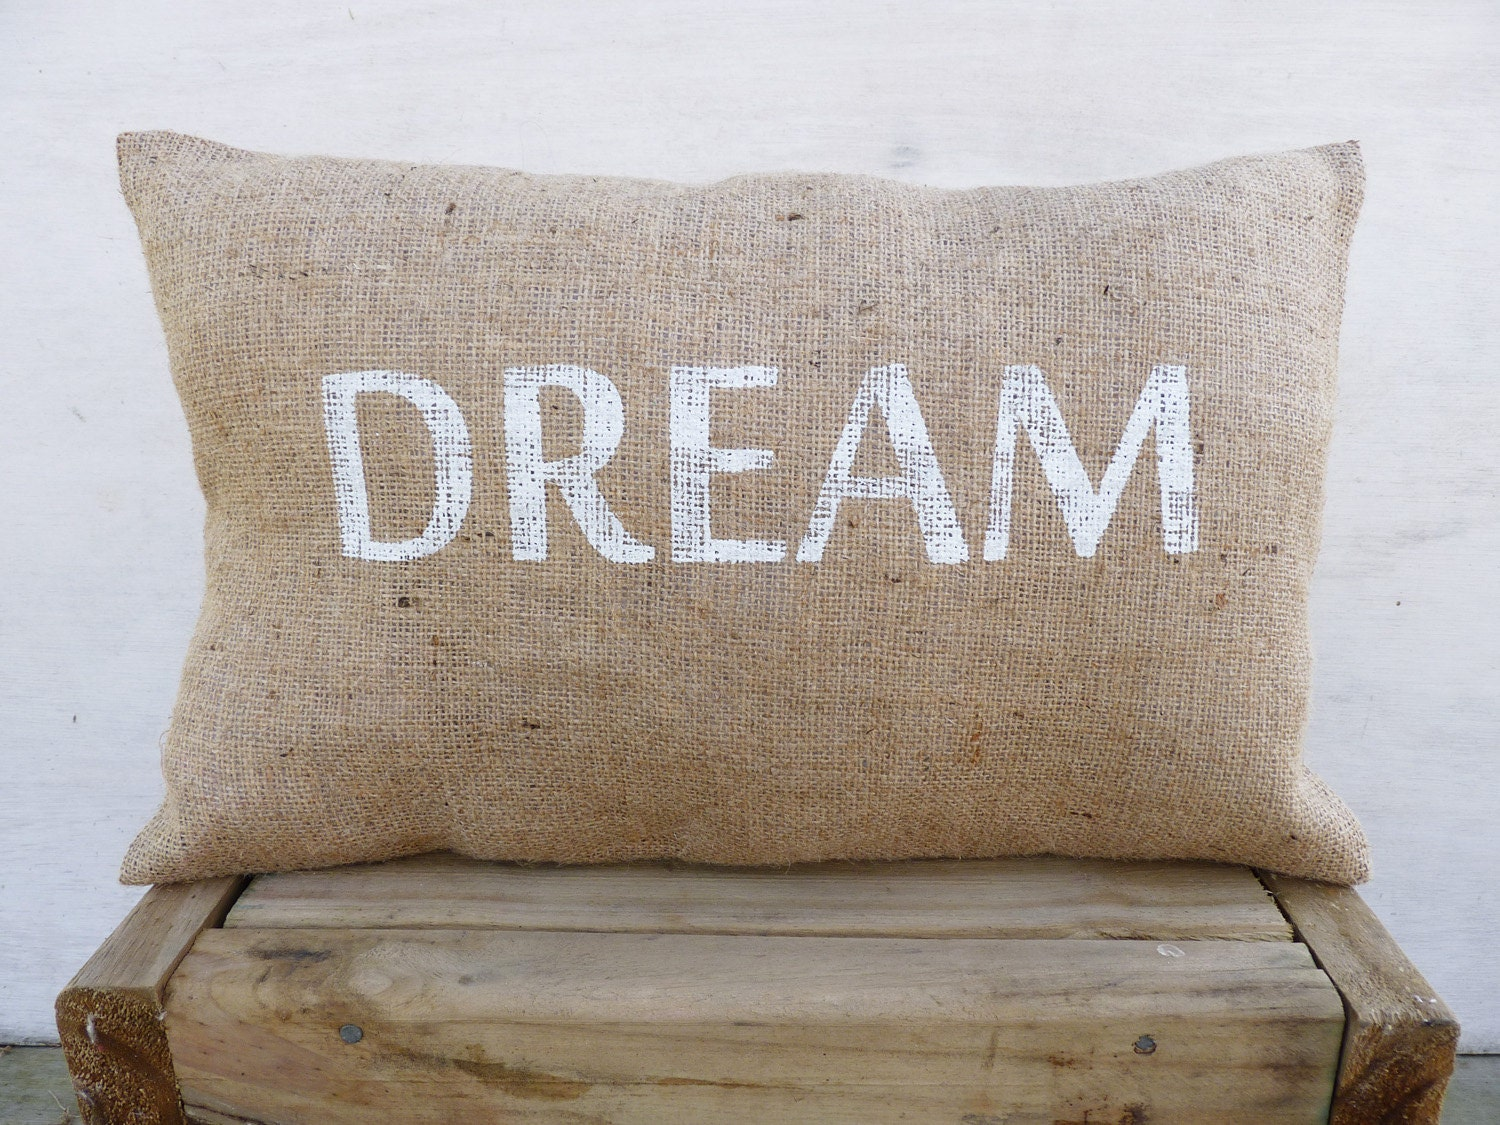 Throw Pillows With Letters On Them : DREAM Throw Pillow Cover Burlap throw pillows by TexturableDecor